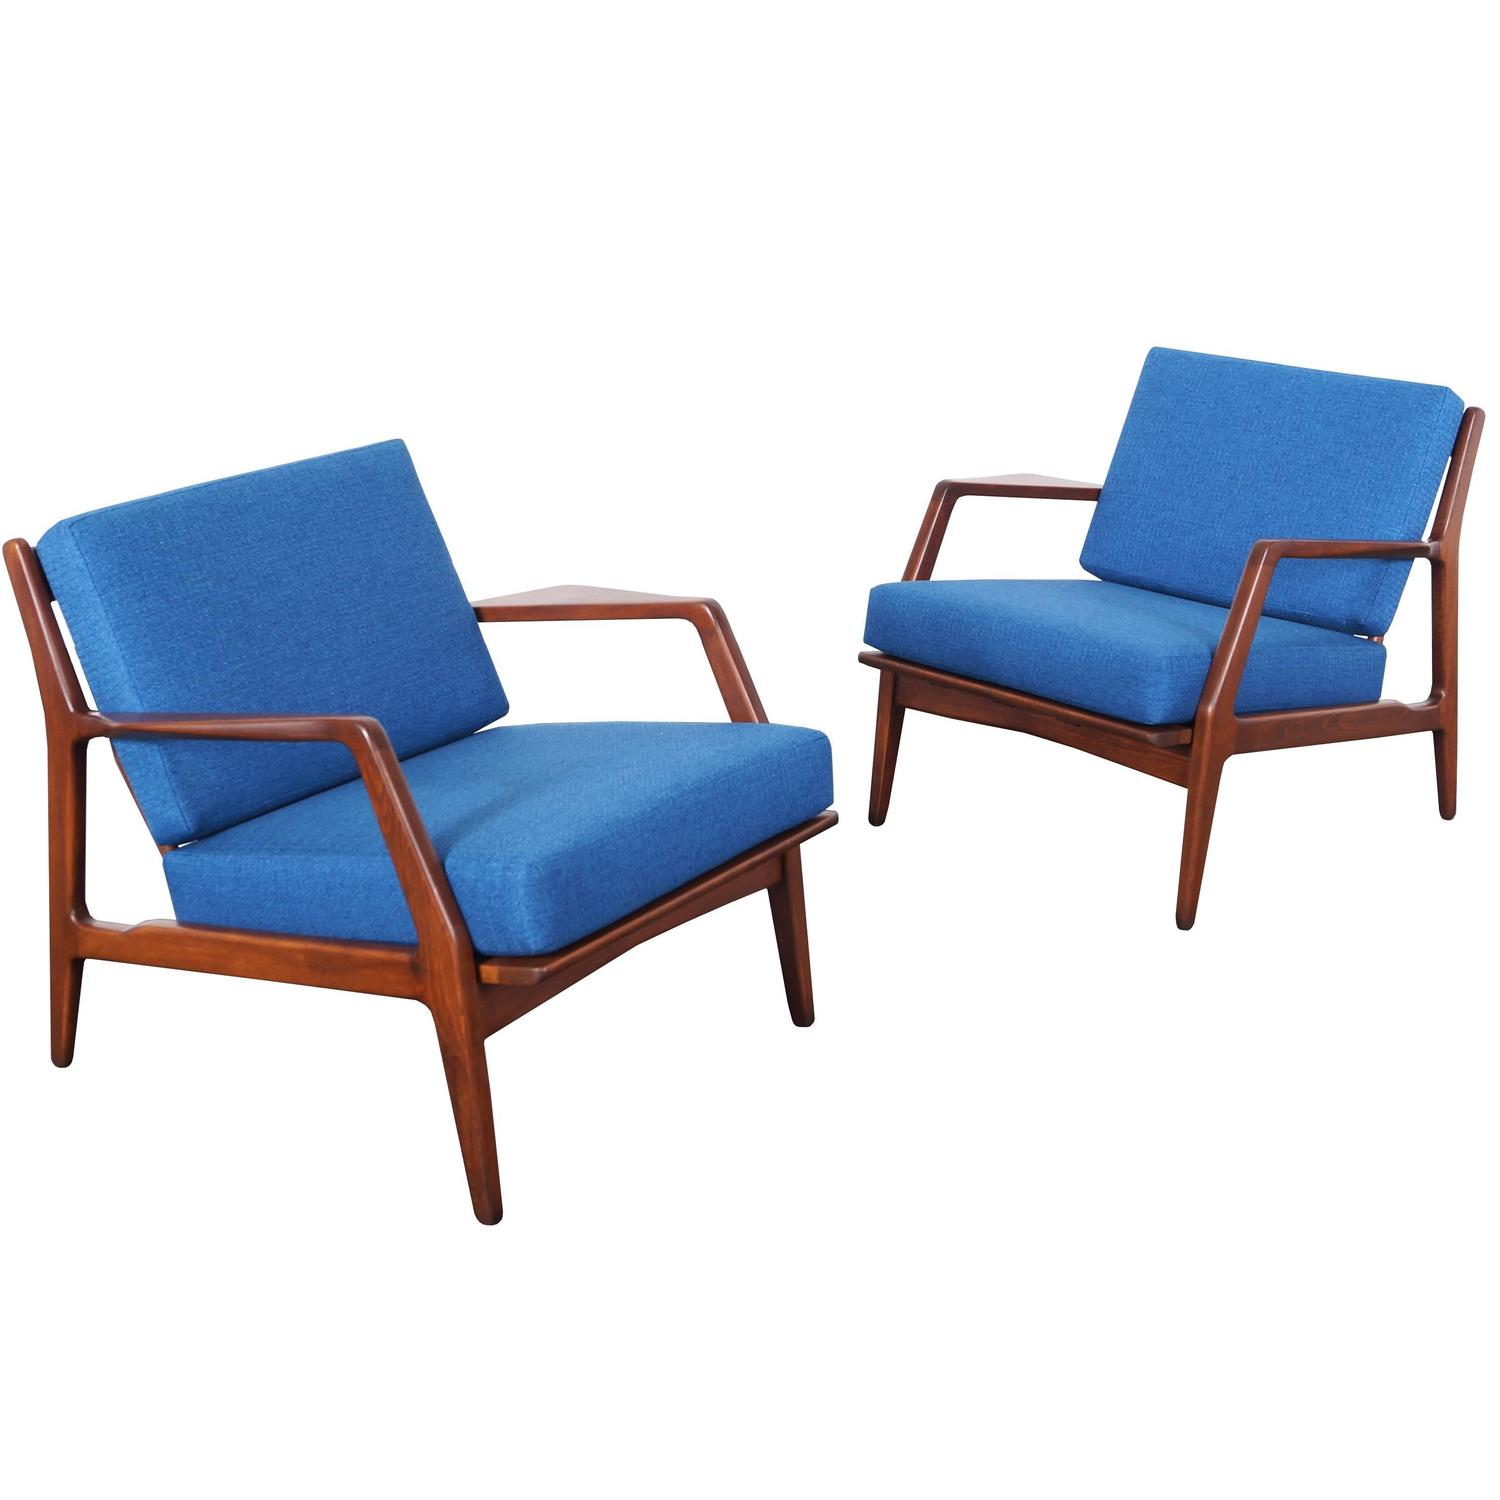 Modern Club Chairs Mid Century Lounge Chairs By Ib Kofod Larsen For Sale At